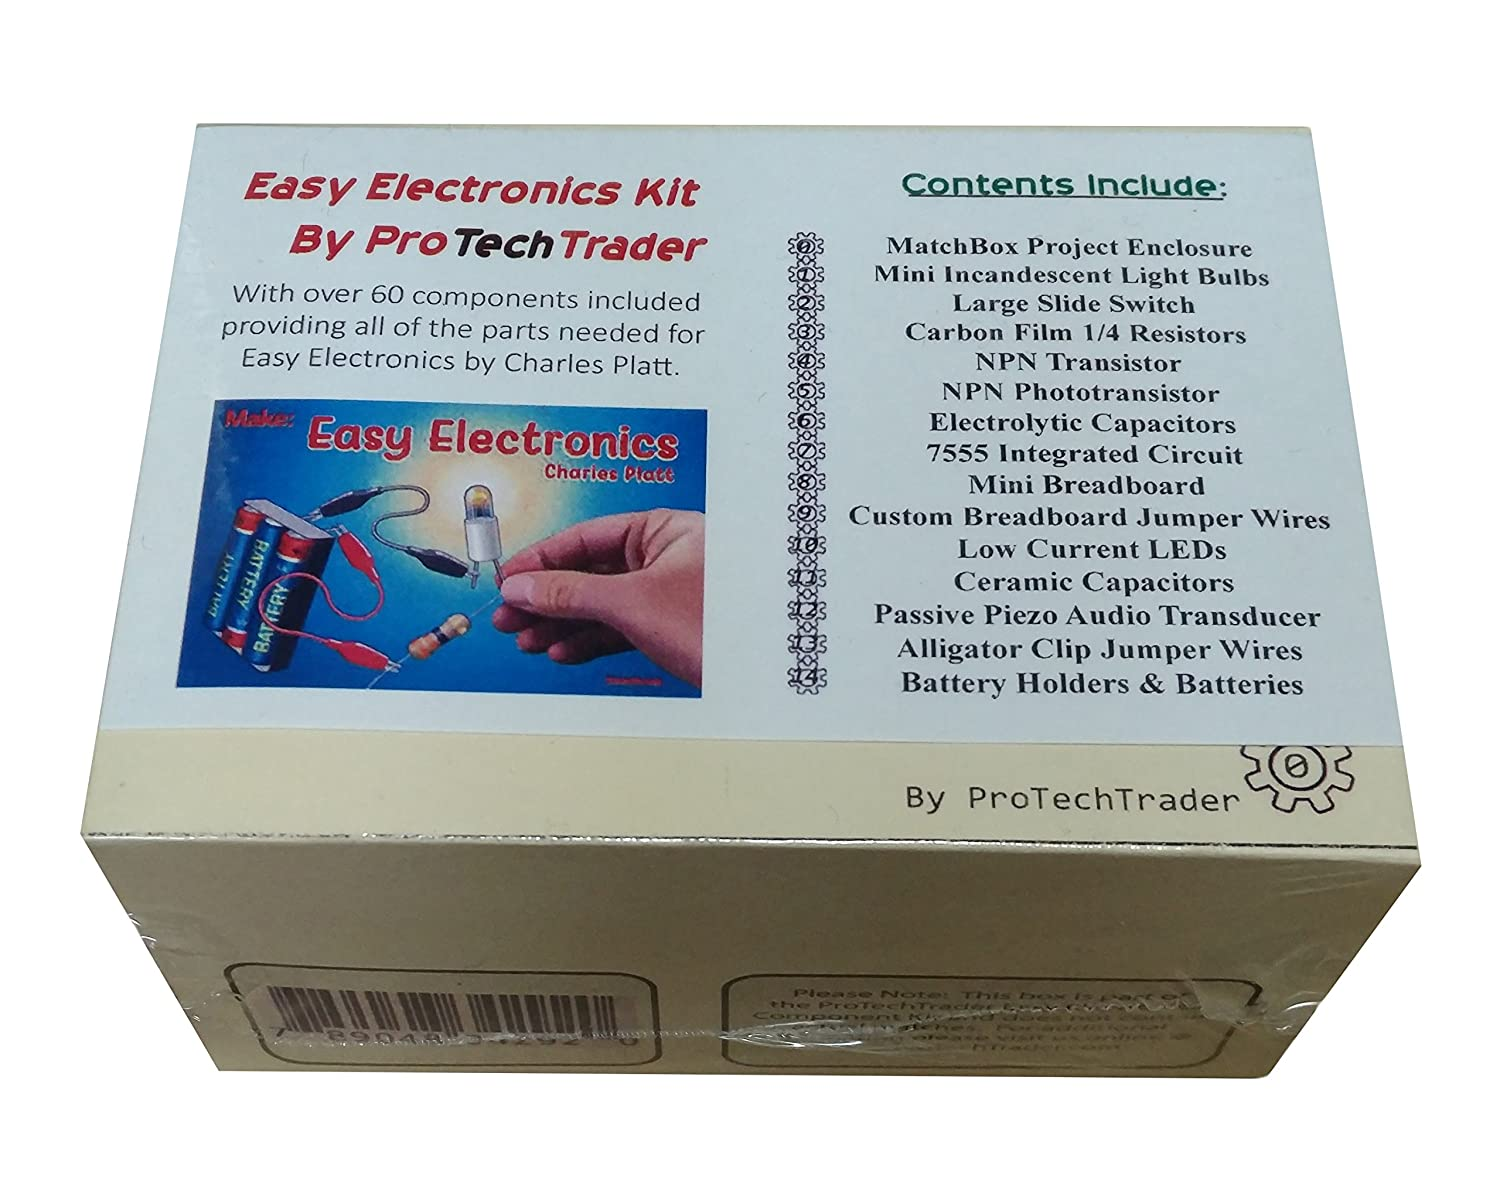 ProTechTrader Make Easy Electronics Component Pack Lean Basic Electronics with no Tools for Easy Electronics by Charles Platt Book Sold Separately